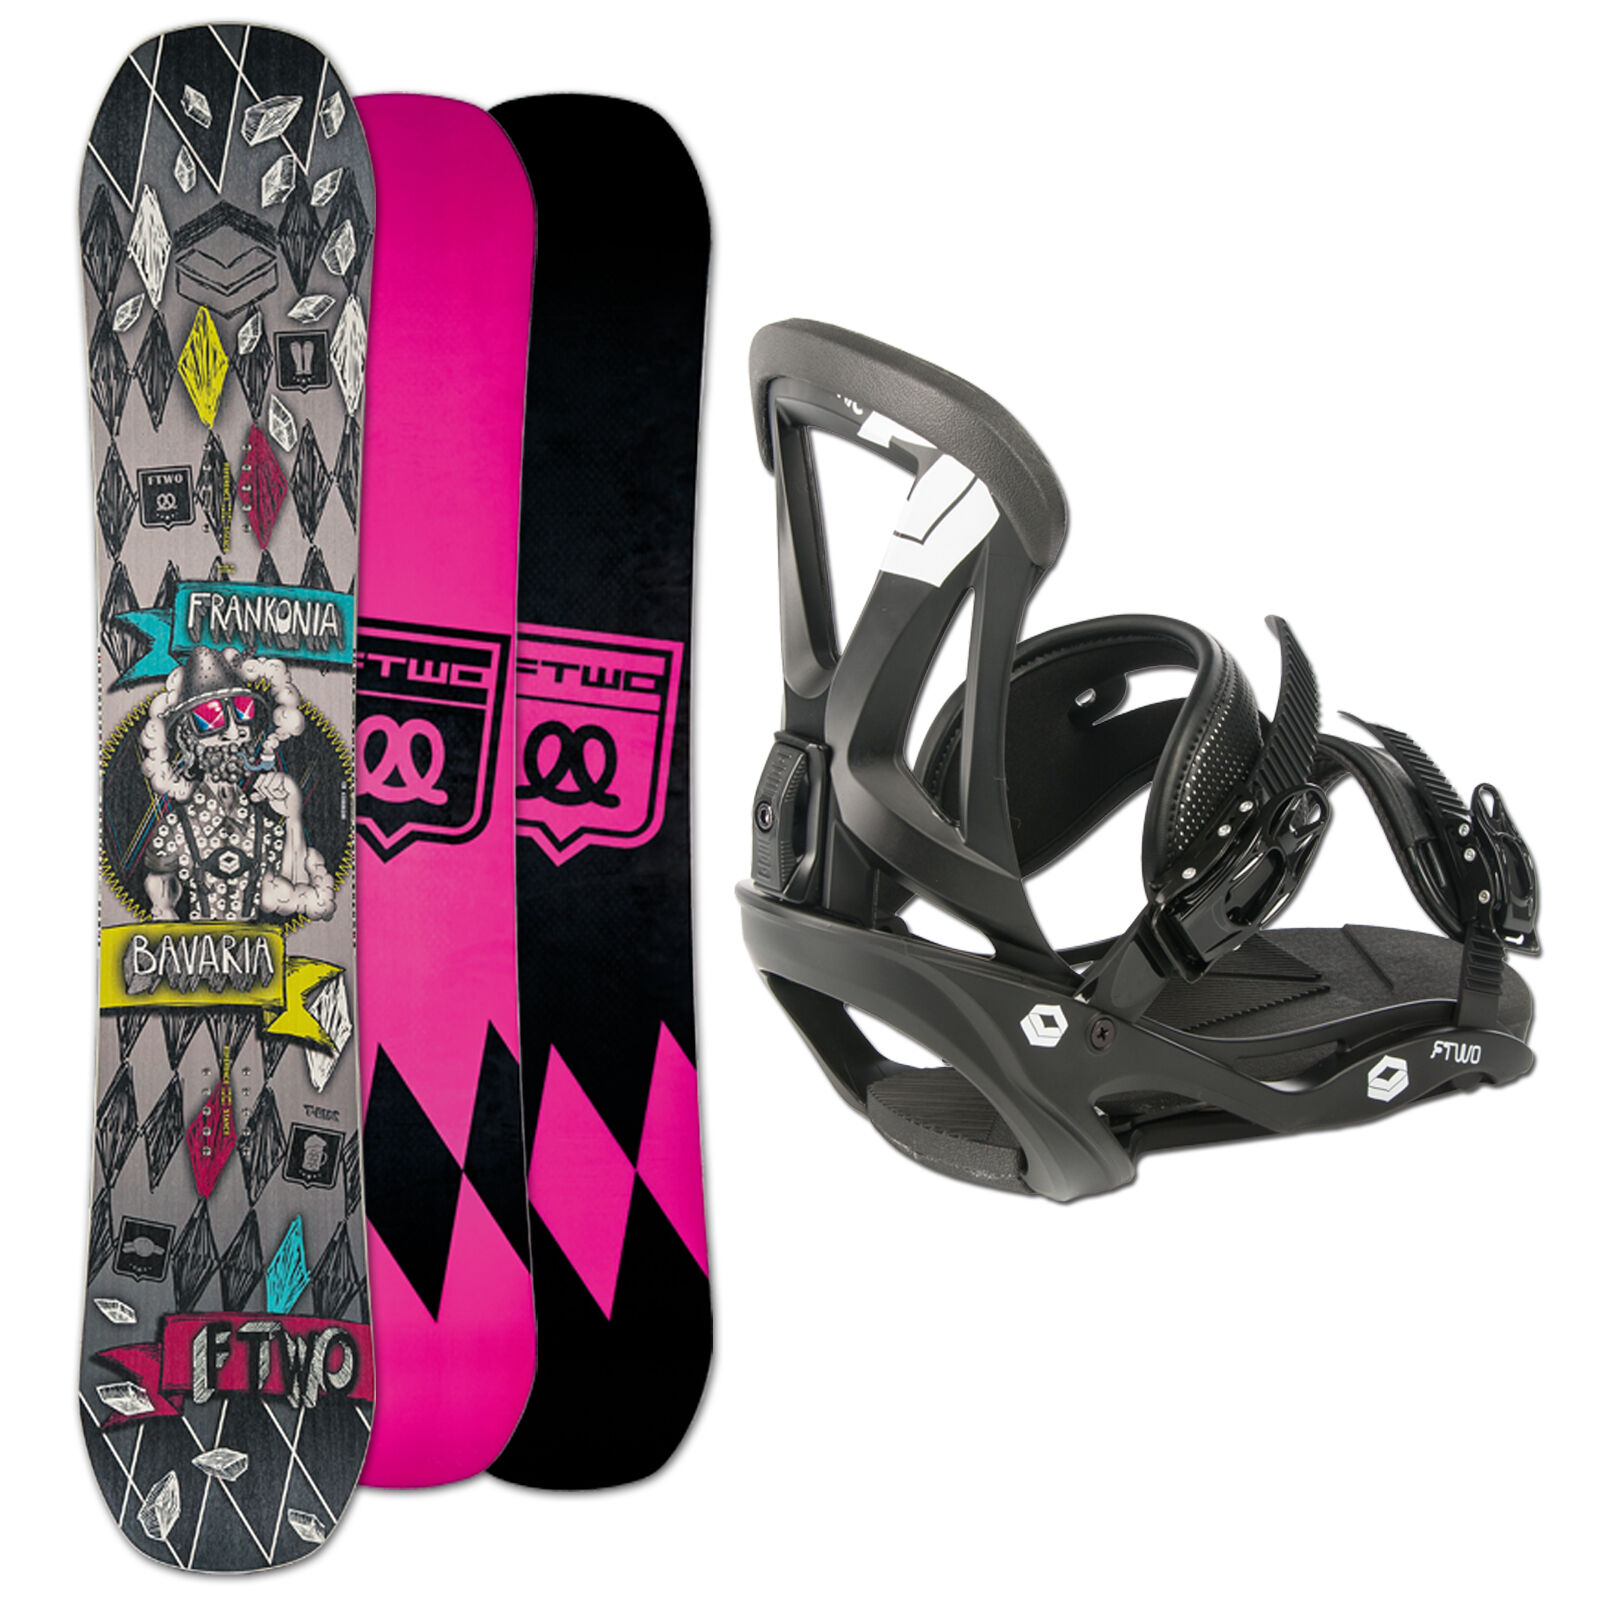 SNOWBOARD SET  FTWO T-RIDE MAN  156 CM WIDE CAMBER + FTWO SONIC BINDUNG L